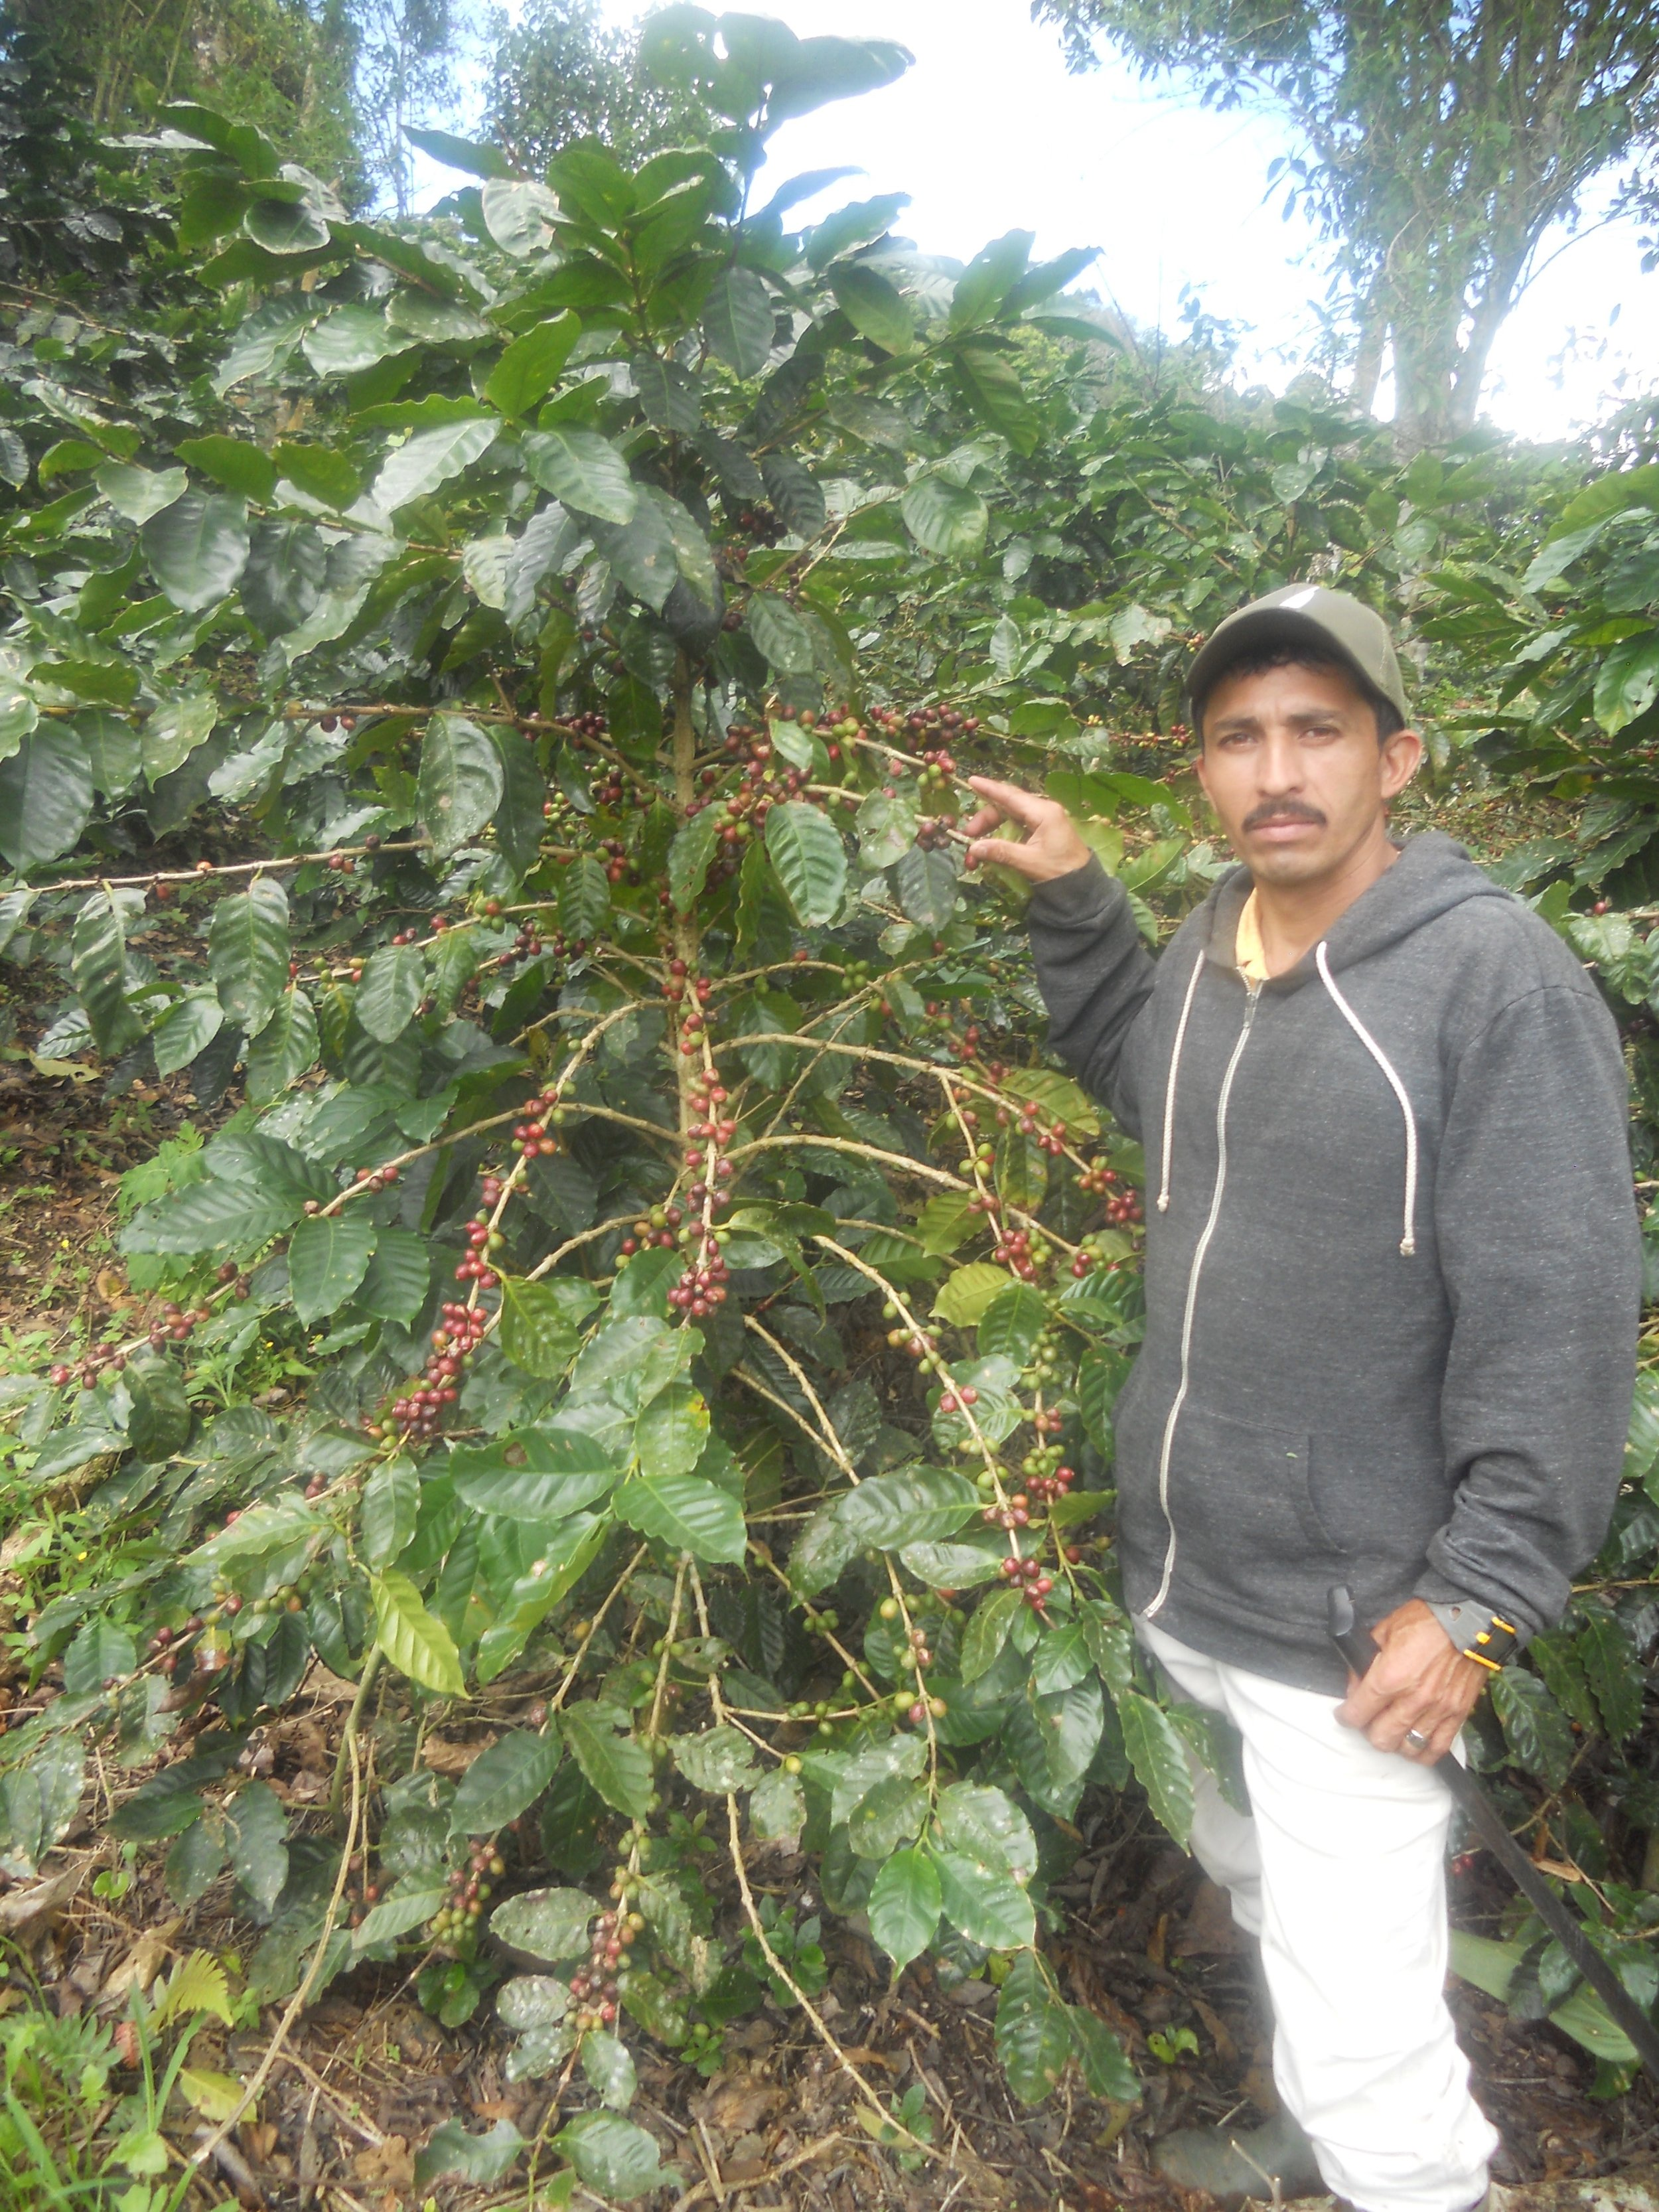 FARM MANAGER DINIS, NEXT TO A PRODUCTIVE 5 YEAR OLD COFFEE PLANT